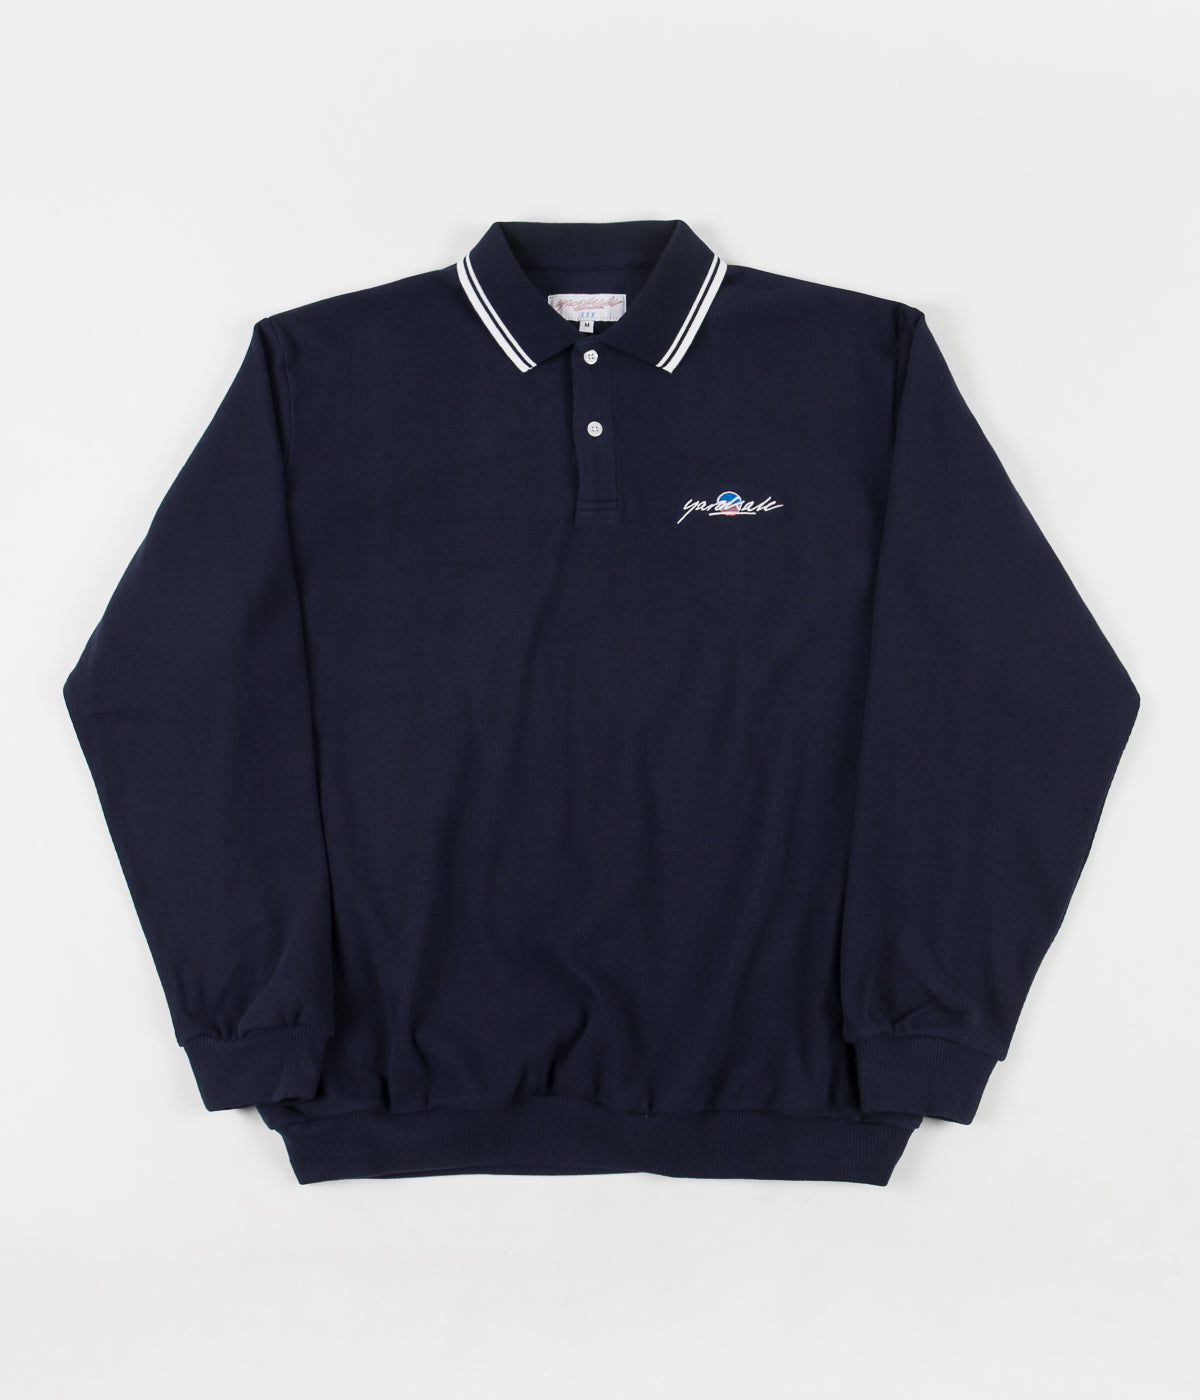 Yardsale Lounge Polo Sweatshirt - Navy